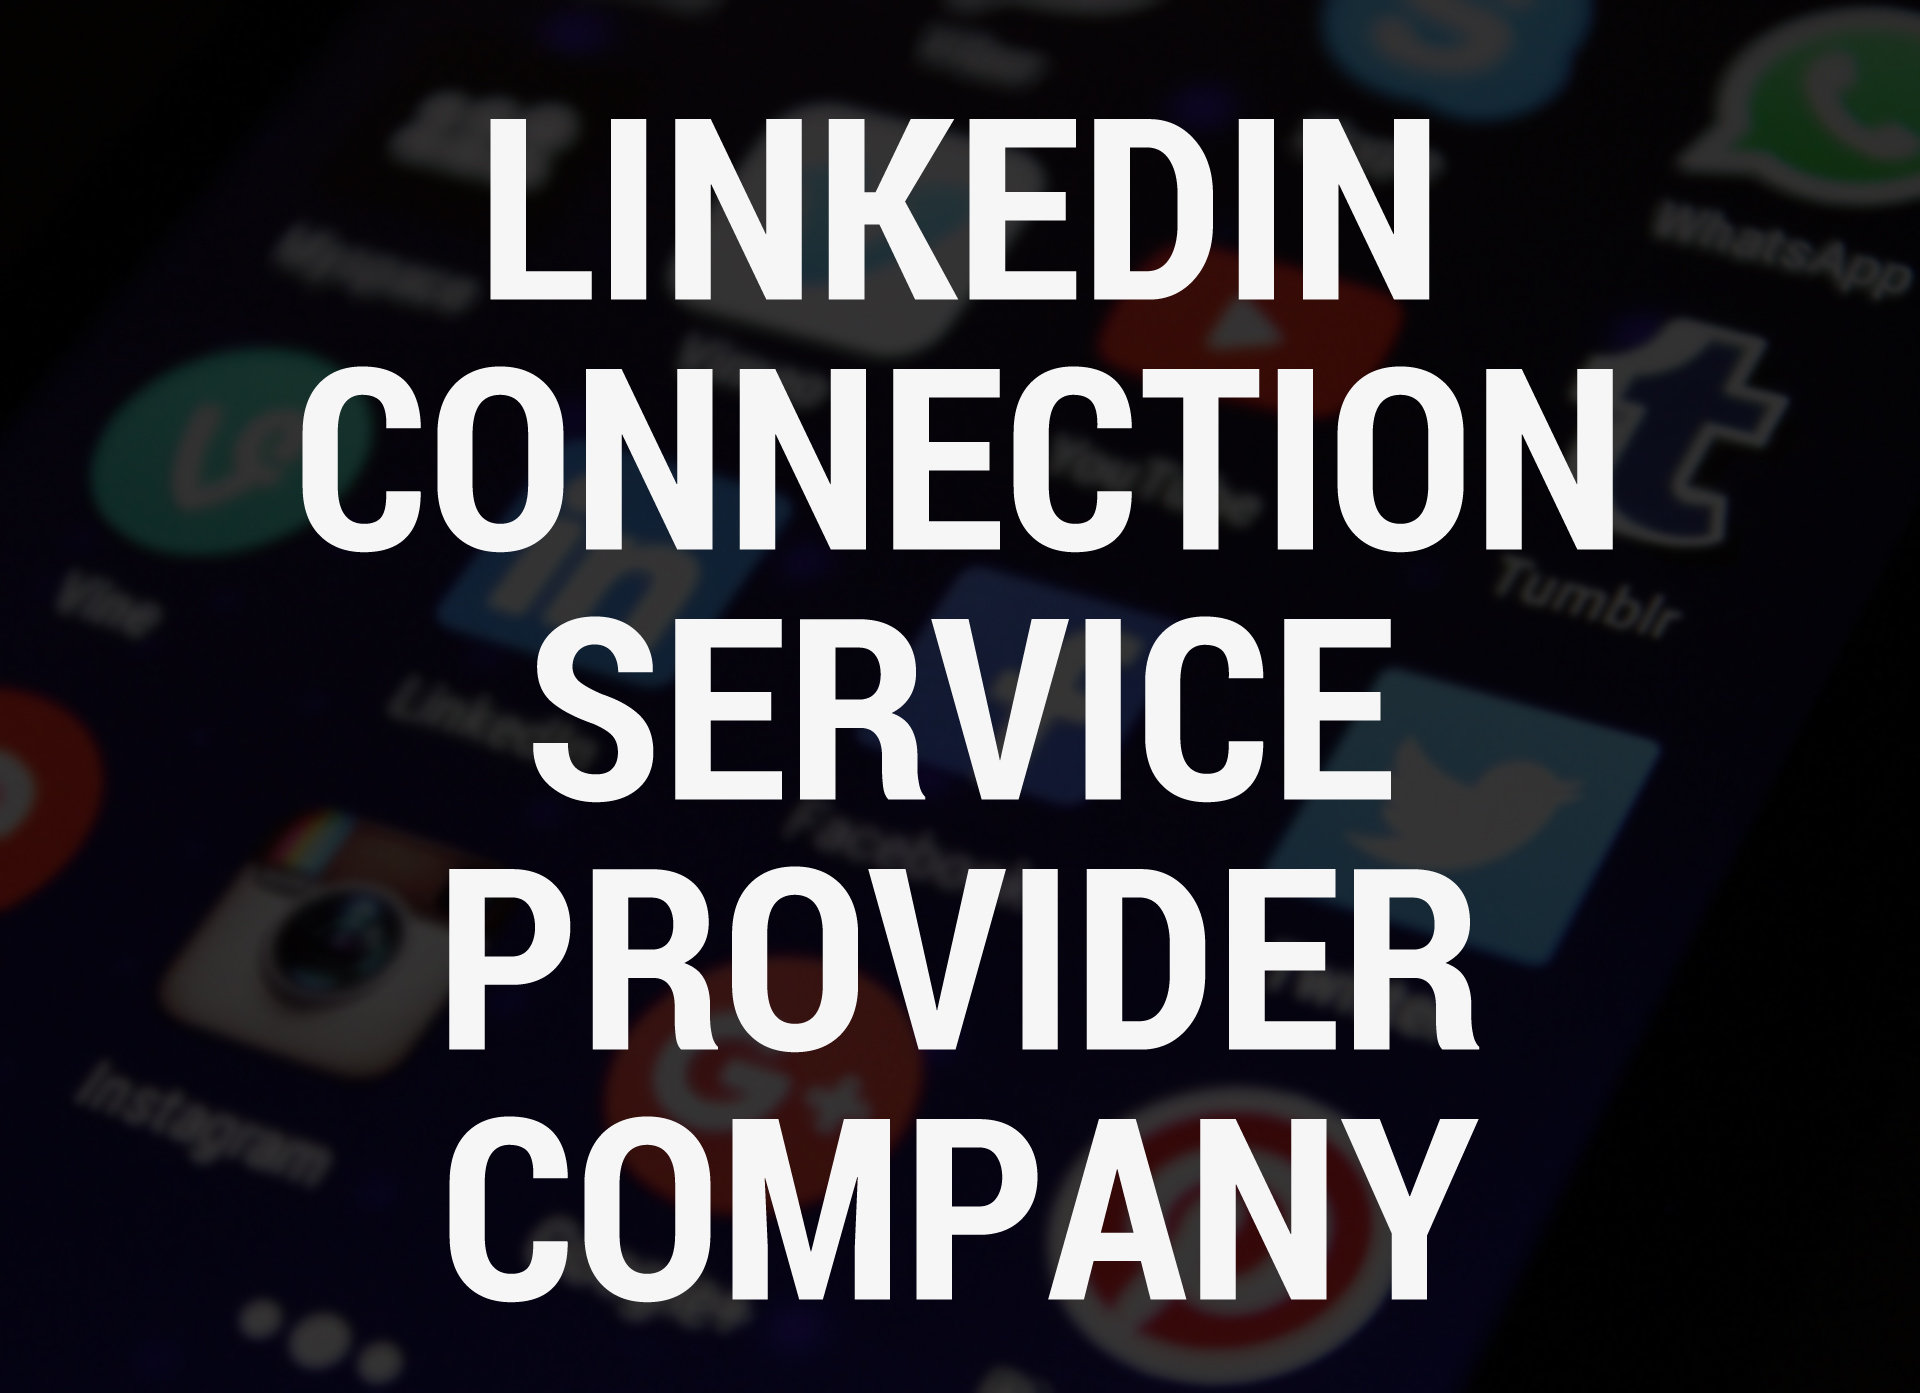 Linkedin Connection Service